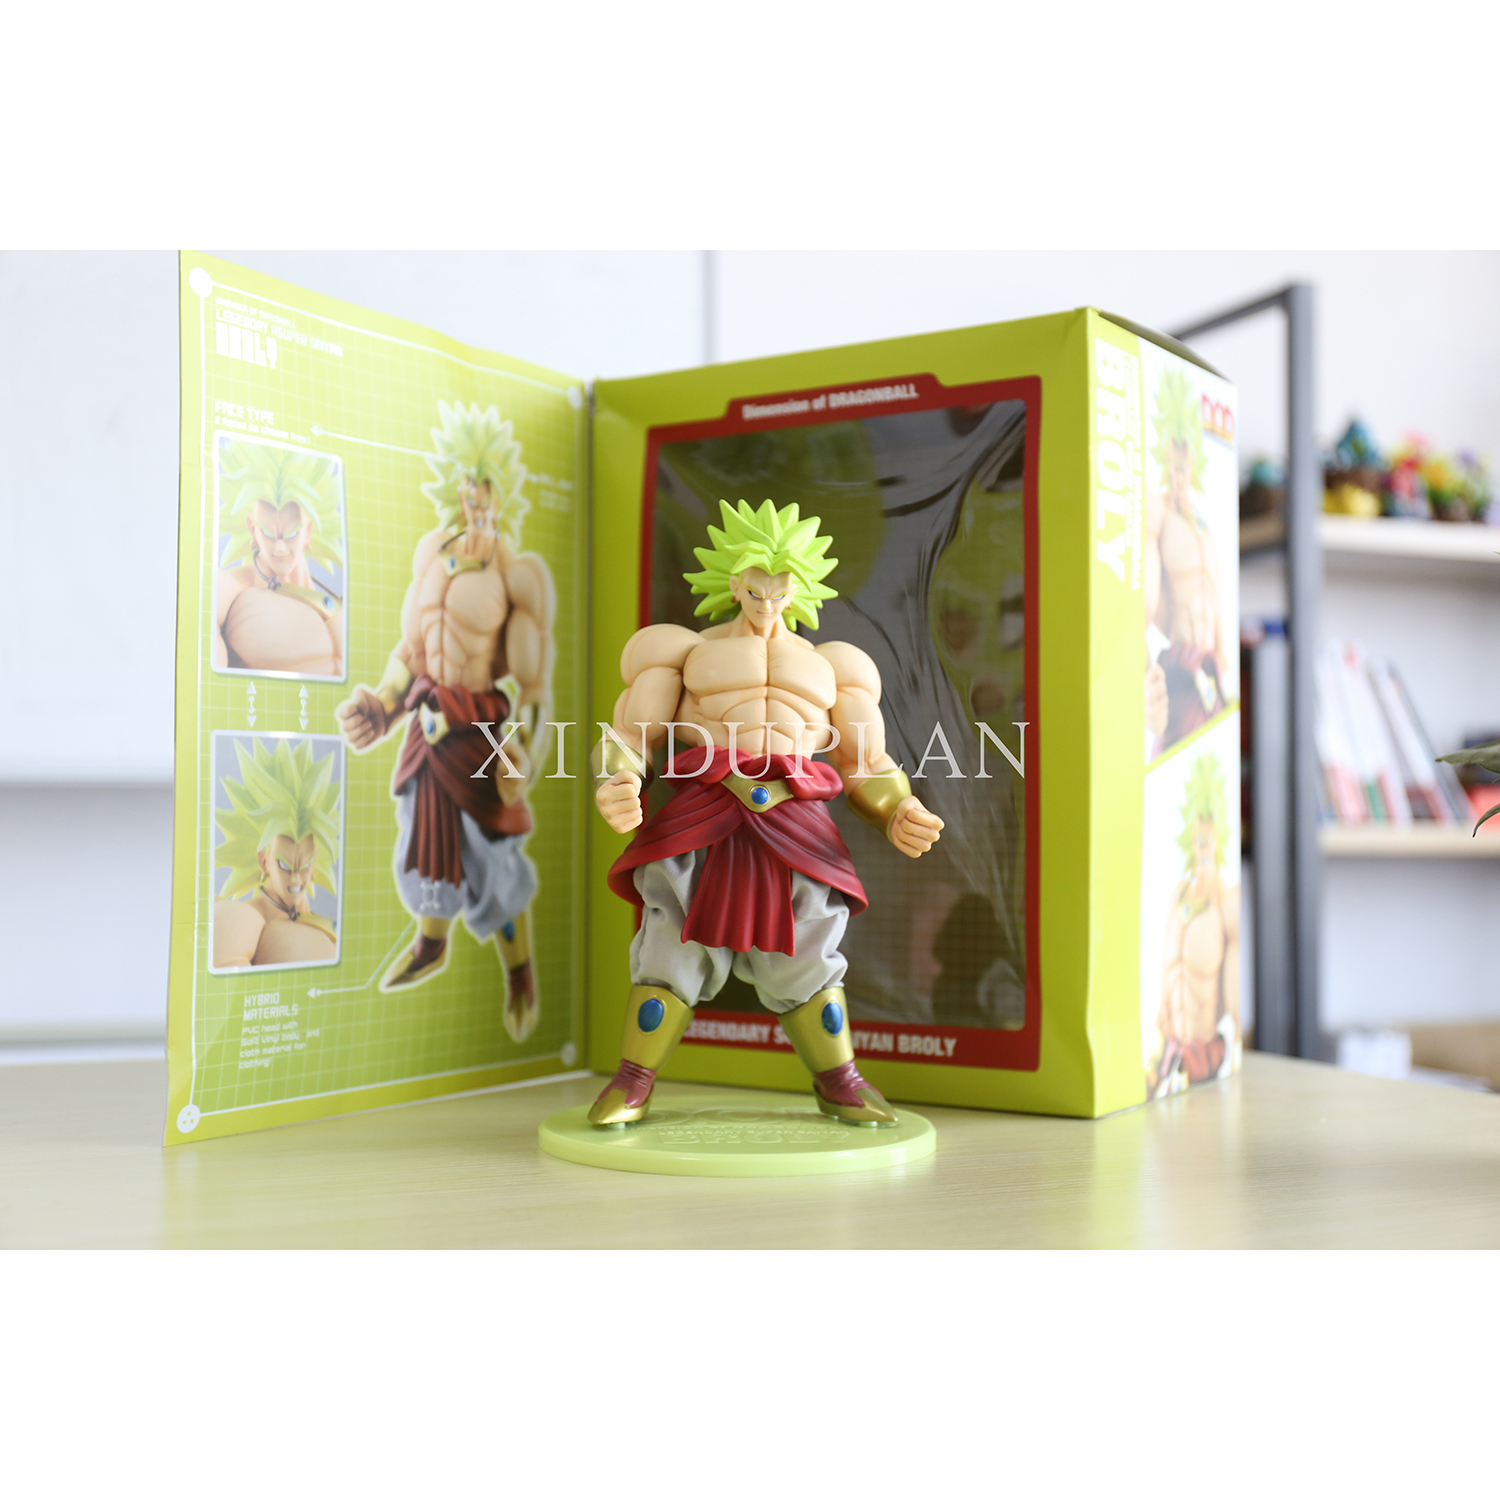 XINDUPLAN Dragon Ball Z Action Anime Movie Dragonball Broli Son Goku Super Saiyan three Action Figure Toys 25cm PVC Model 0132 dragon ball z broli 1 8 scale painted figure super saiyan 3 broli doll pvc action figure collectible model toy 17cm kt3195